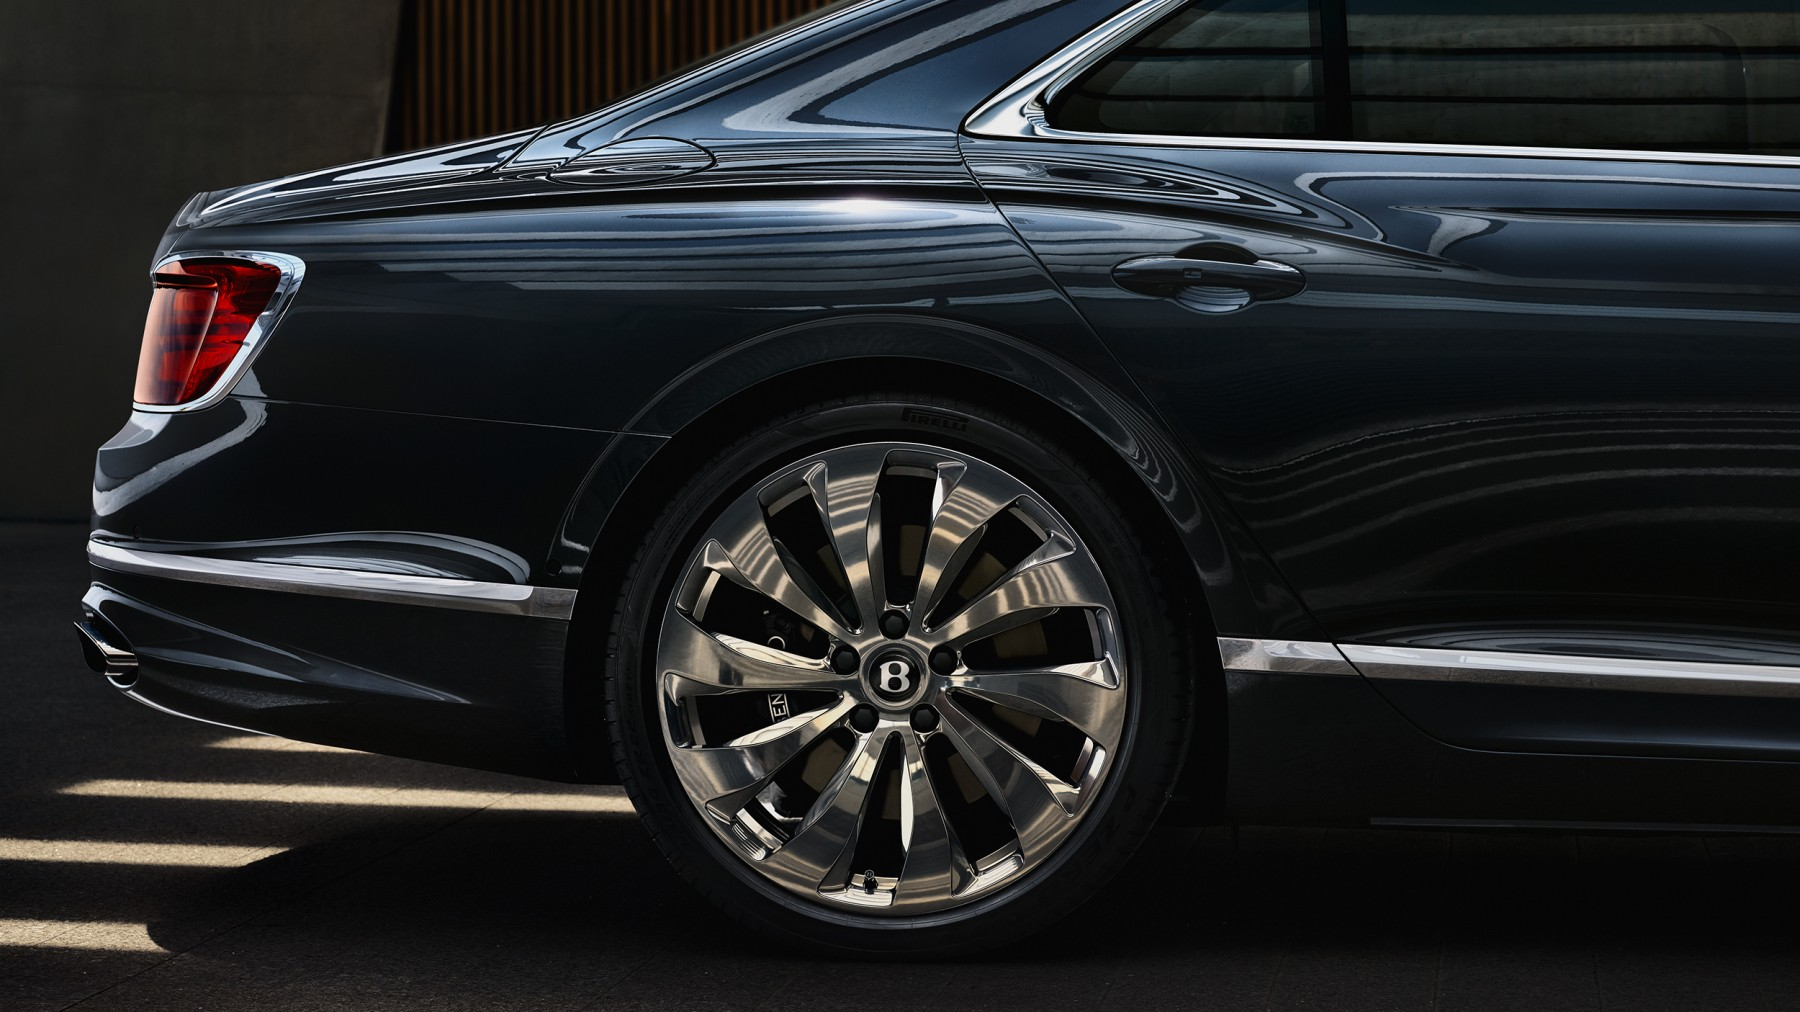 the-new-bentley-flying-spur-3-by-marc-trautmann